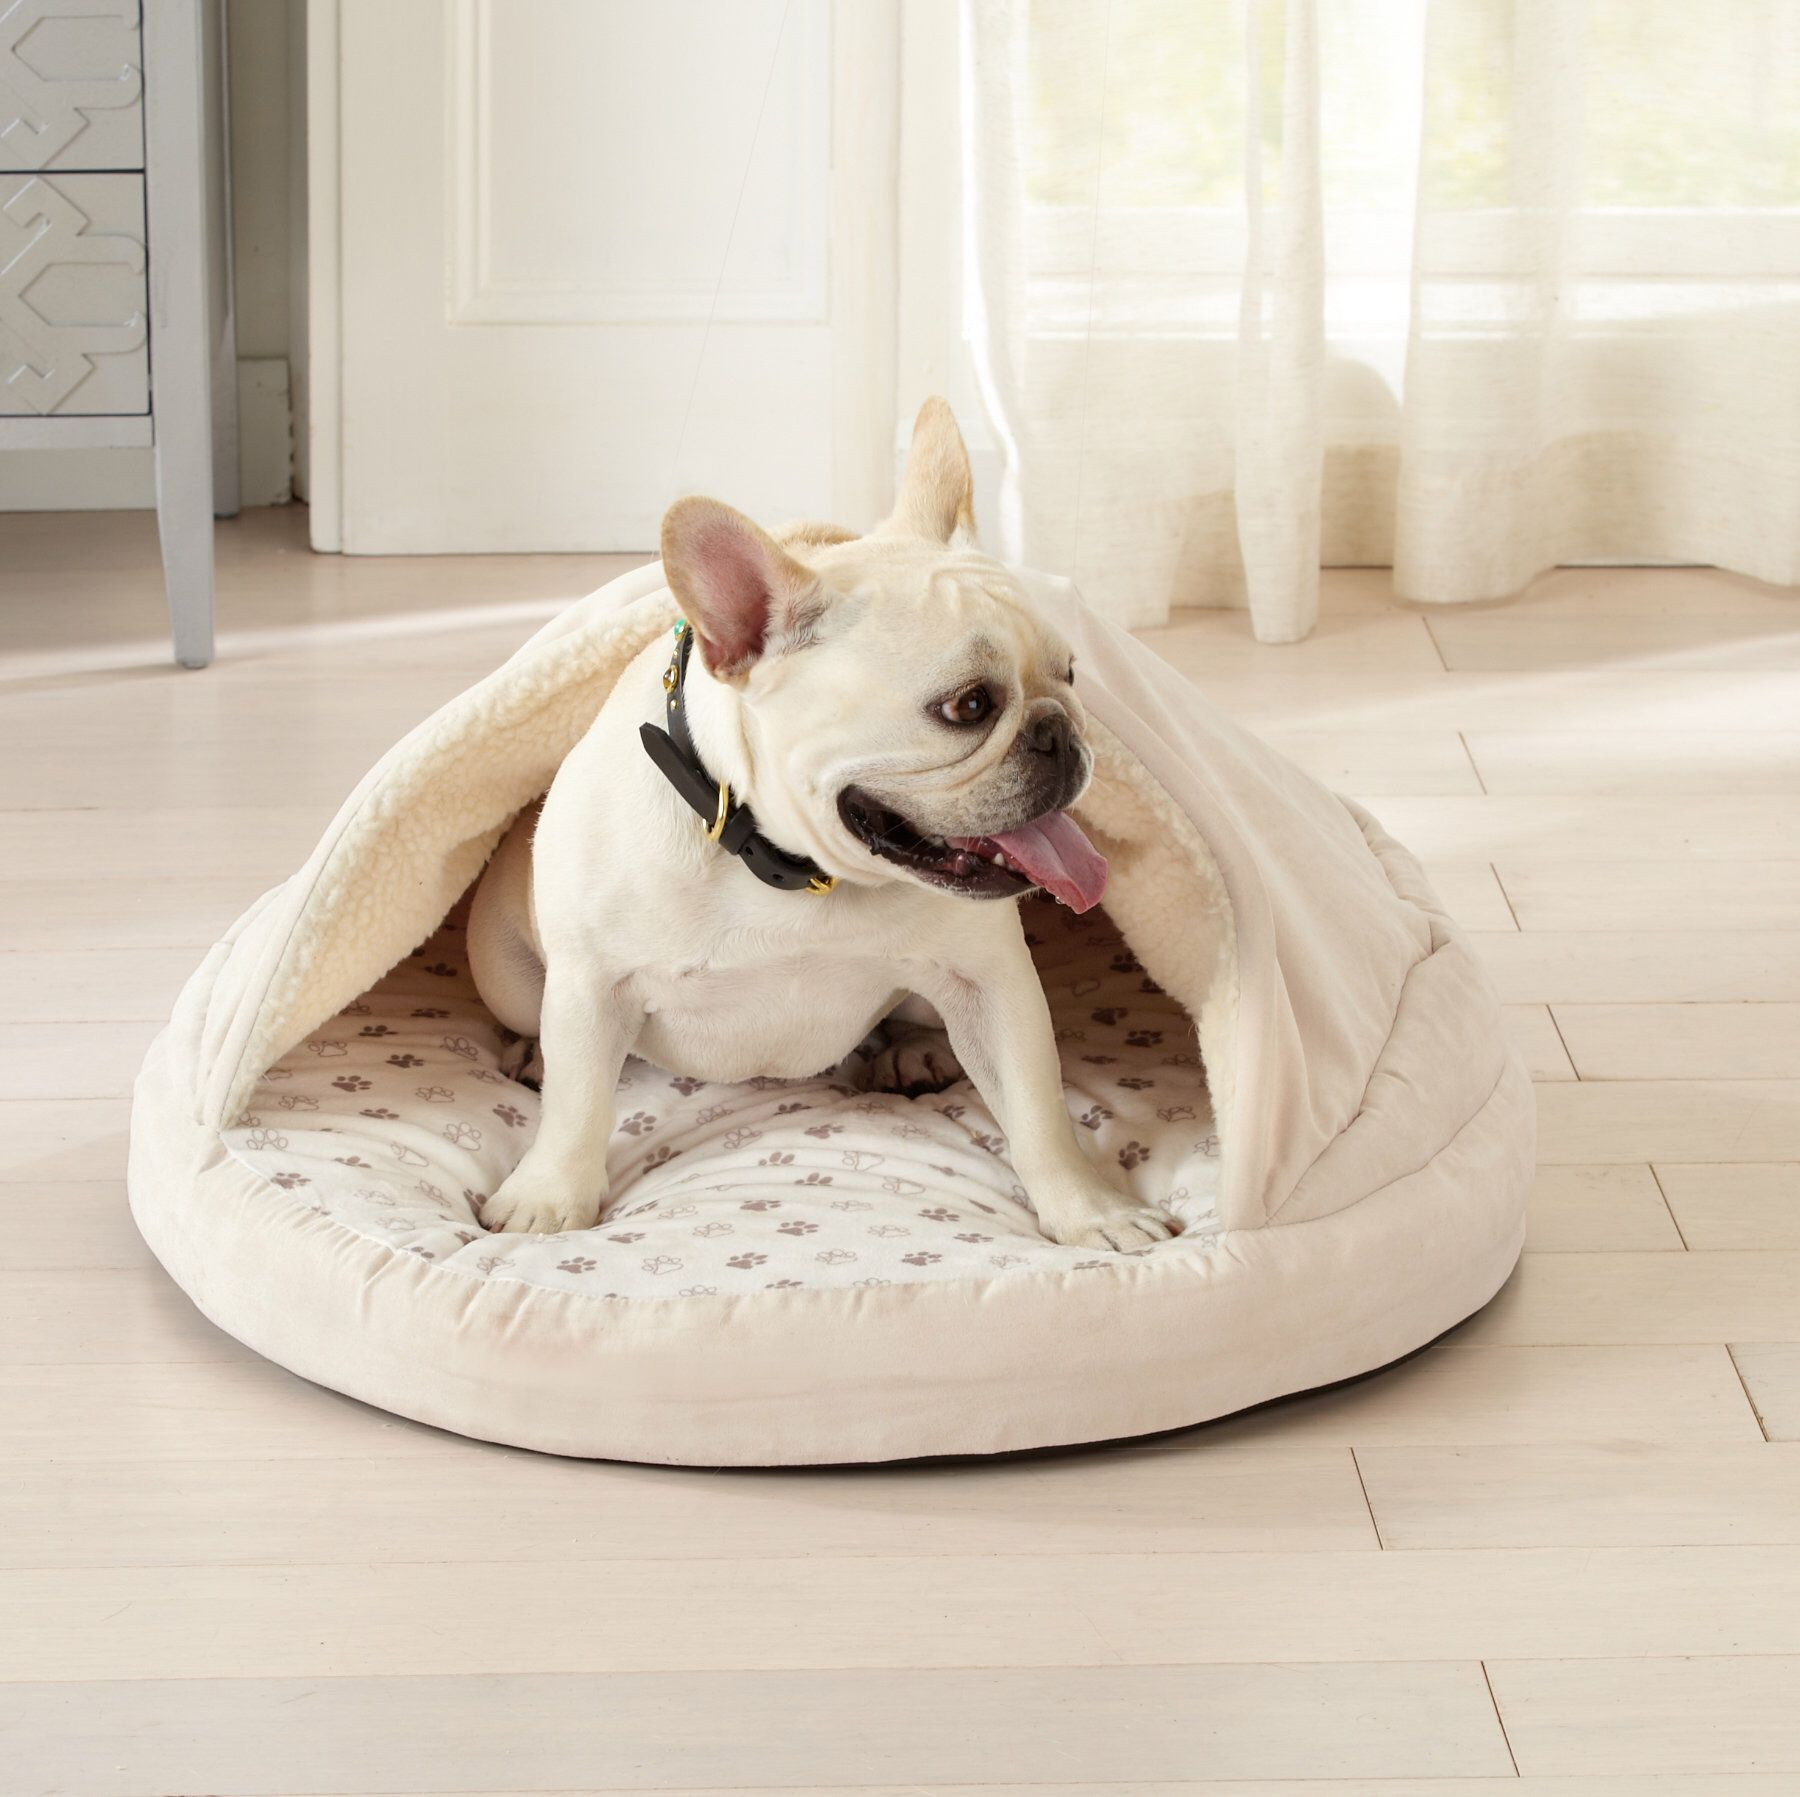 Juanita Cuddle Cave Dog Dome With Cover And Blanket Stylish Dog